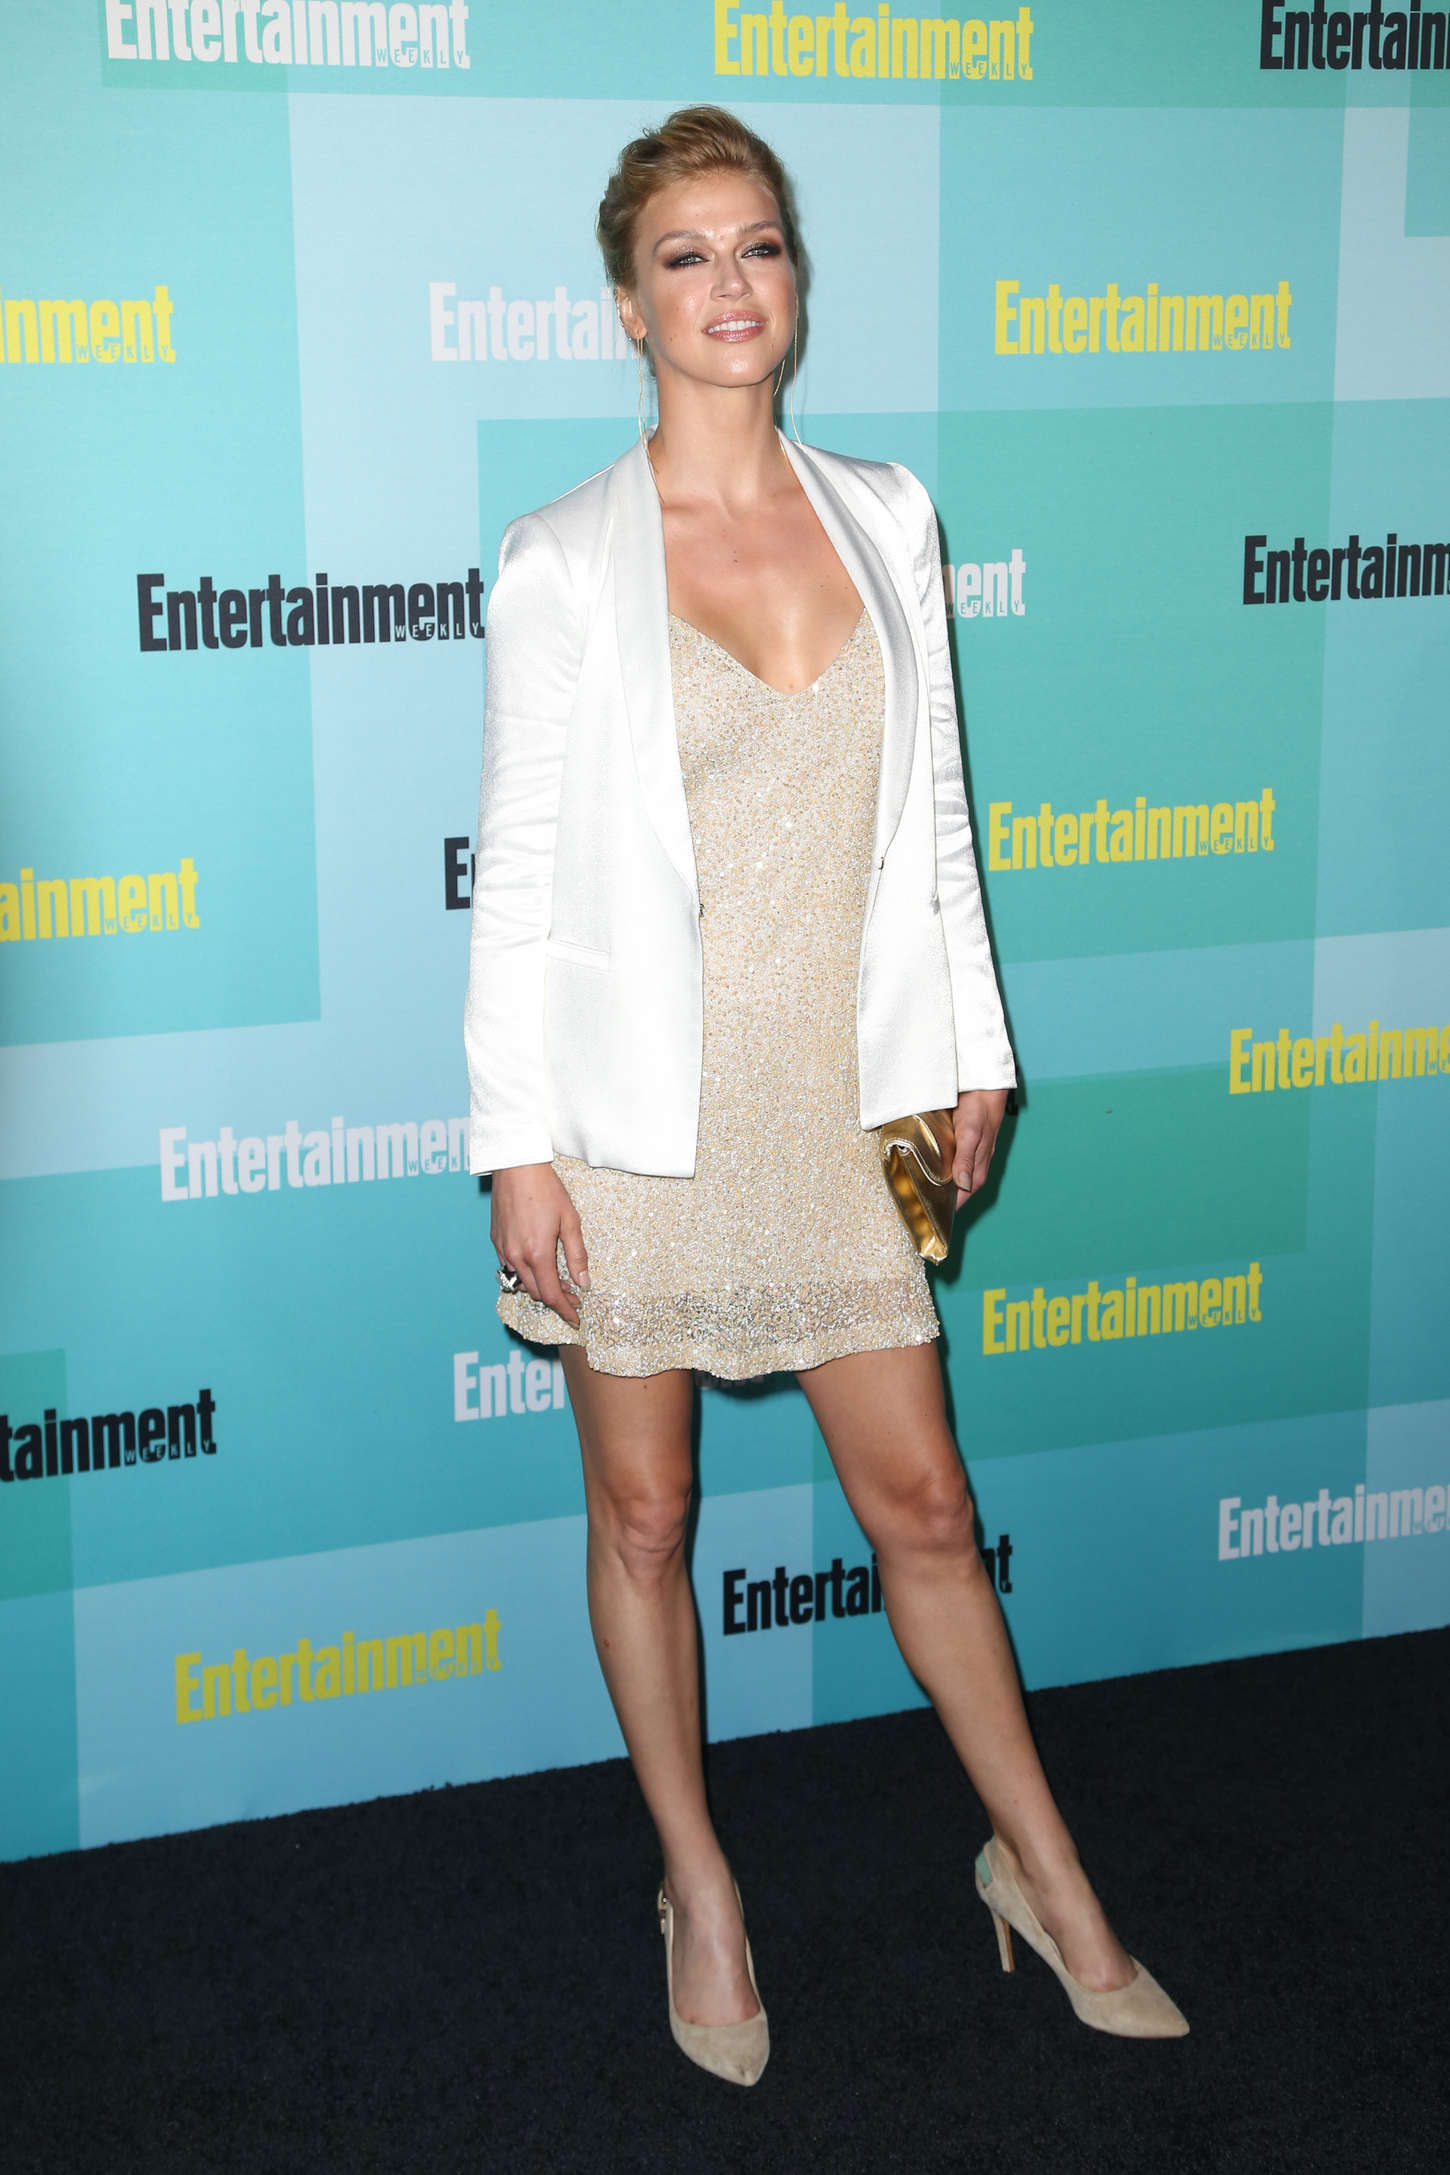 Adrianne Palicki Entertainment Weekly Party at Comic-Con in San Diego